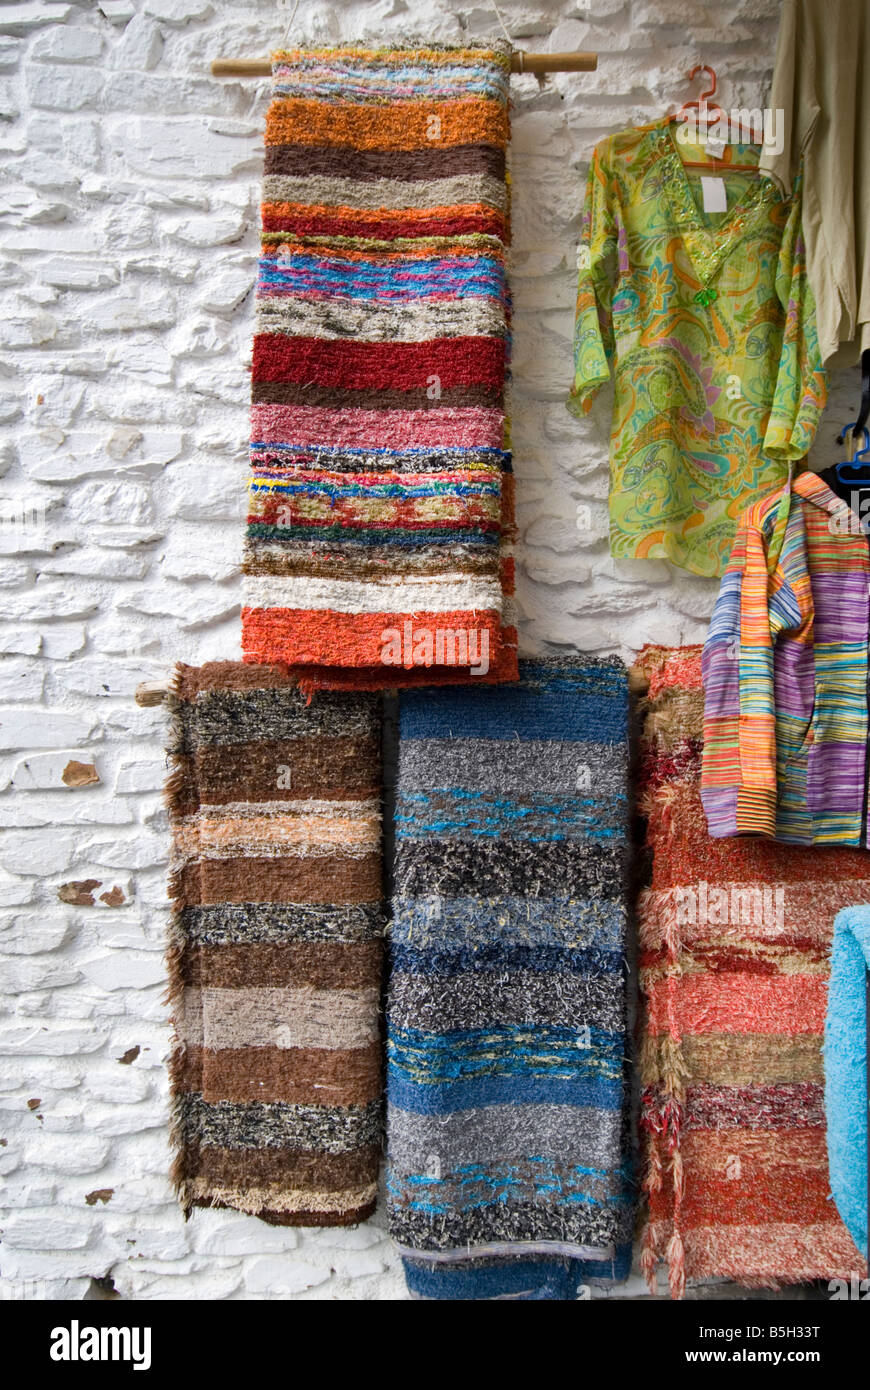 Detail of locally hand made carpets and rugs for sale in Pampaneira village in Sierra Nevada Southern Spain - Stock Image